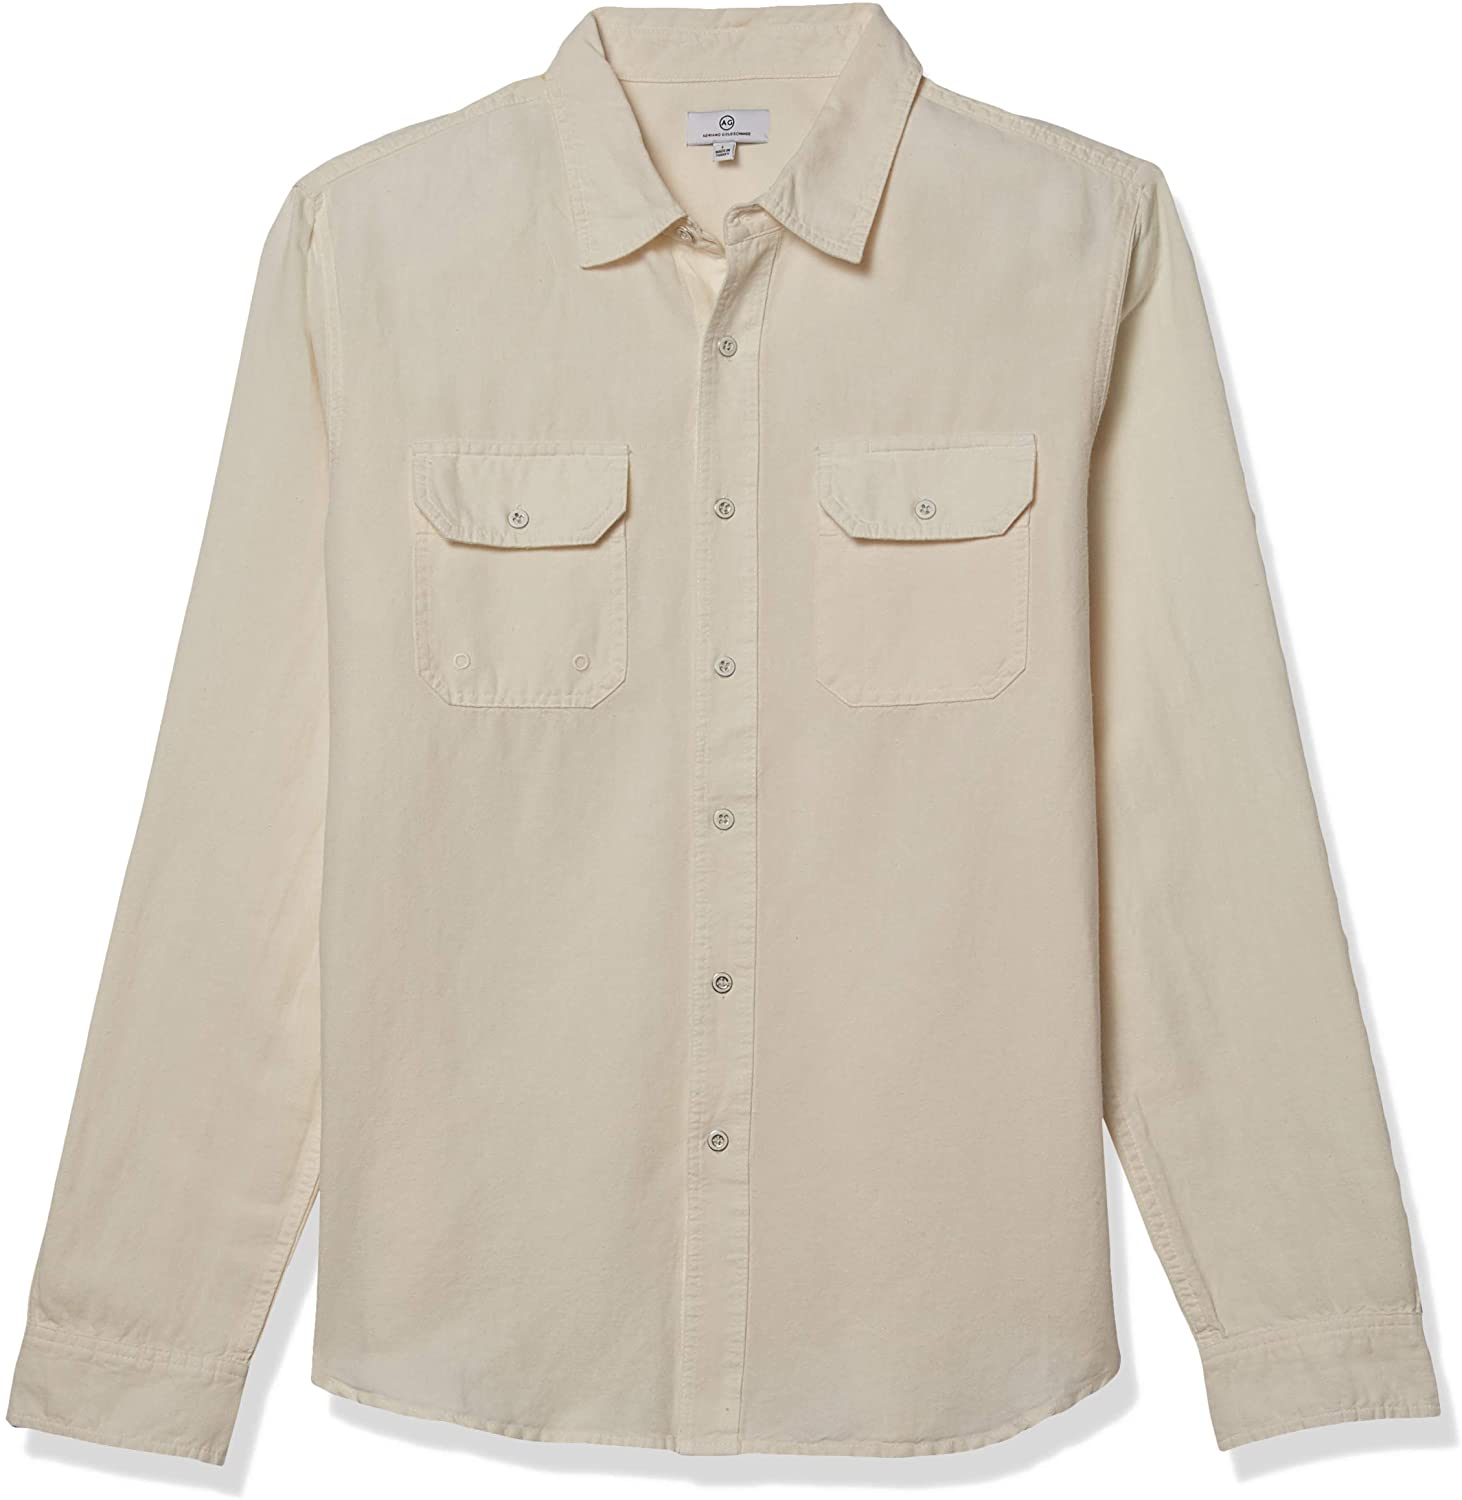 AG Adriano Goldschmied Men's Benning Sleeve Patch Shirt